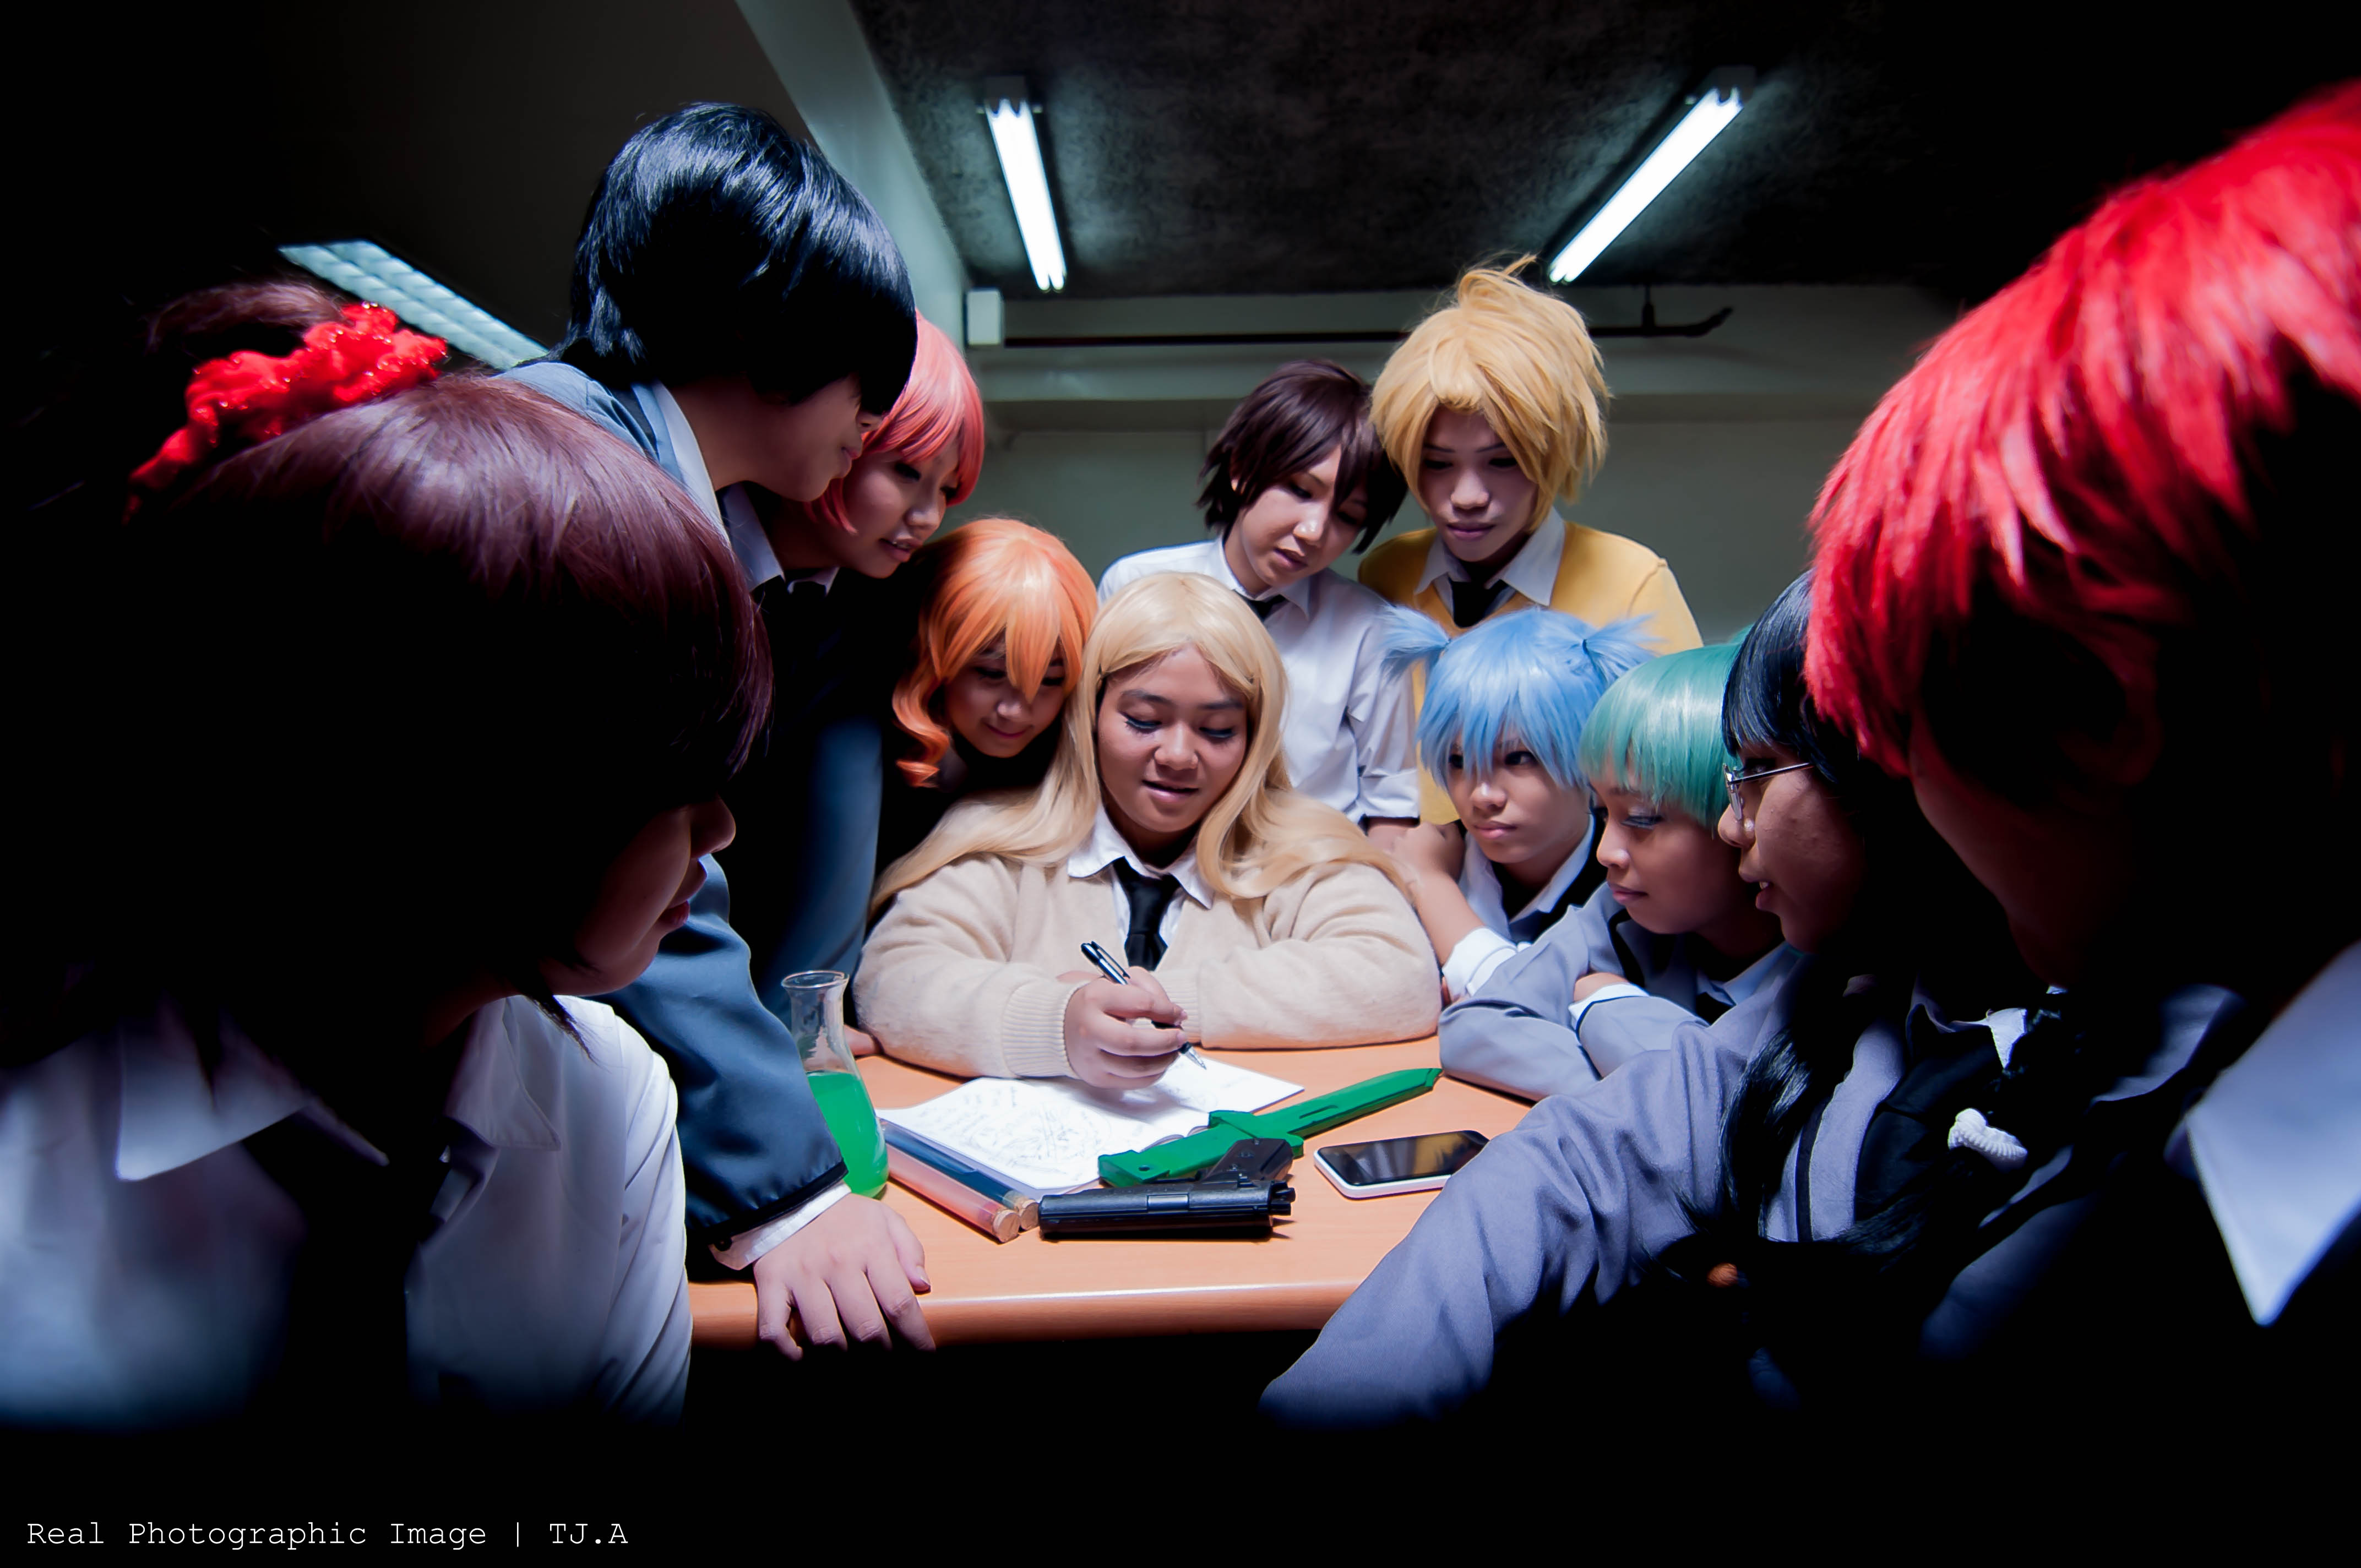 Assassination Classroom by RPhotographicImage on DeviantArt: rphotographicimage.deviantart.com/art/Assassination-Classroom...